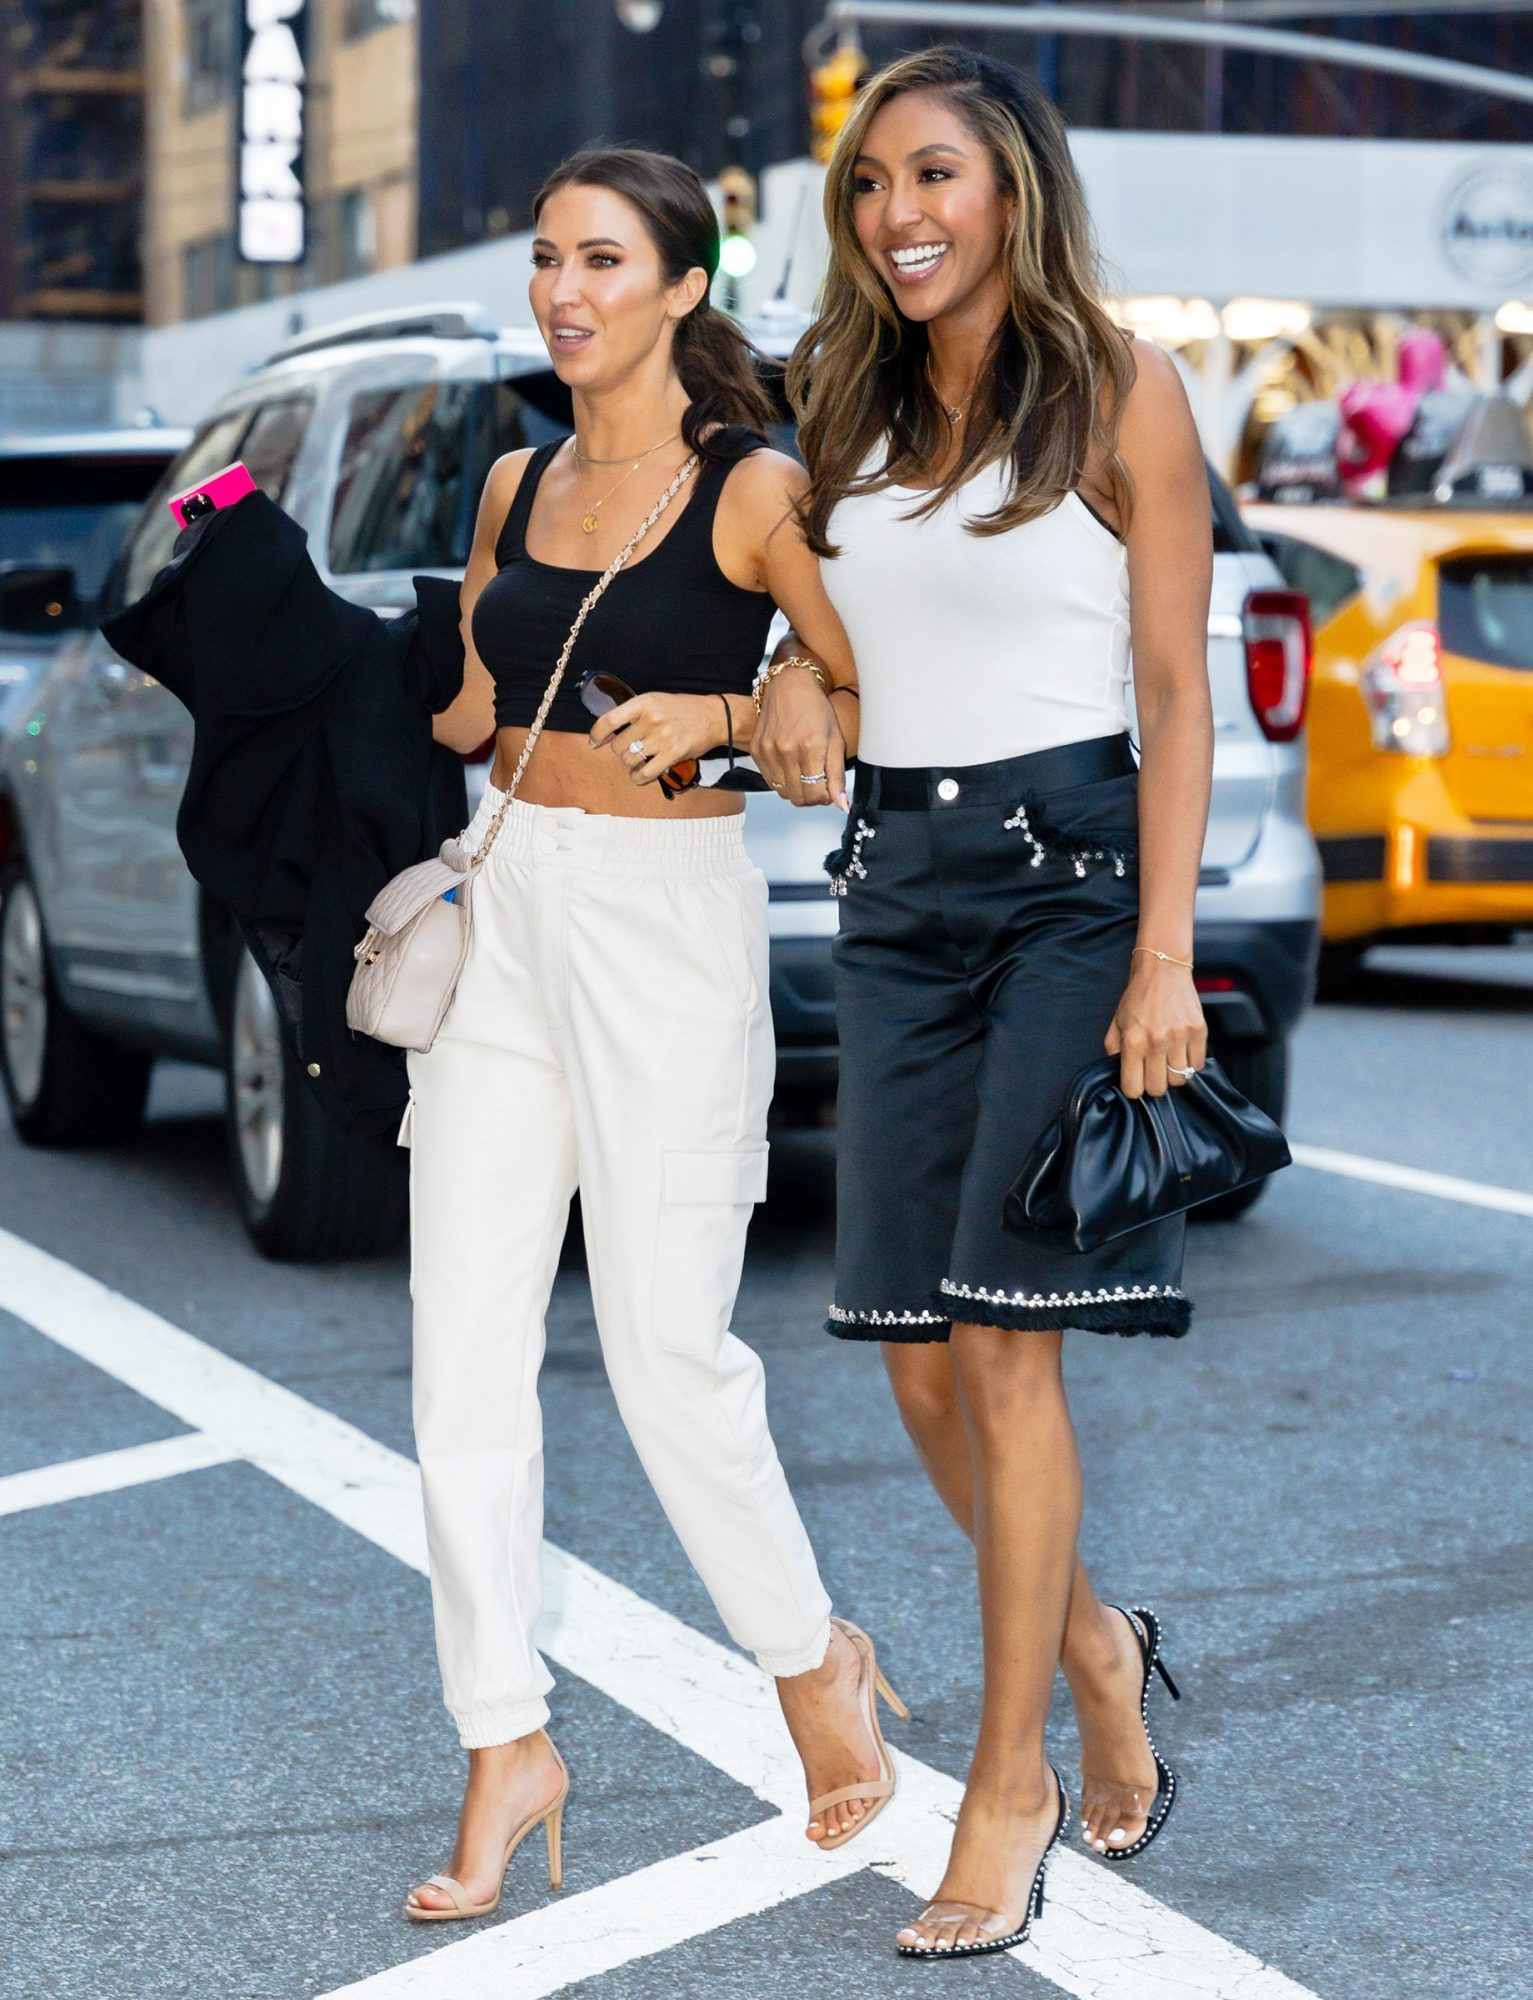 Kaitlyn Bristowe (L) and Tayshia Adams are seen in NoHo on June 10, 2021 in New York City